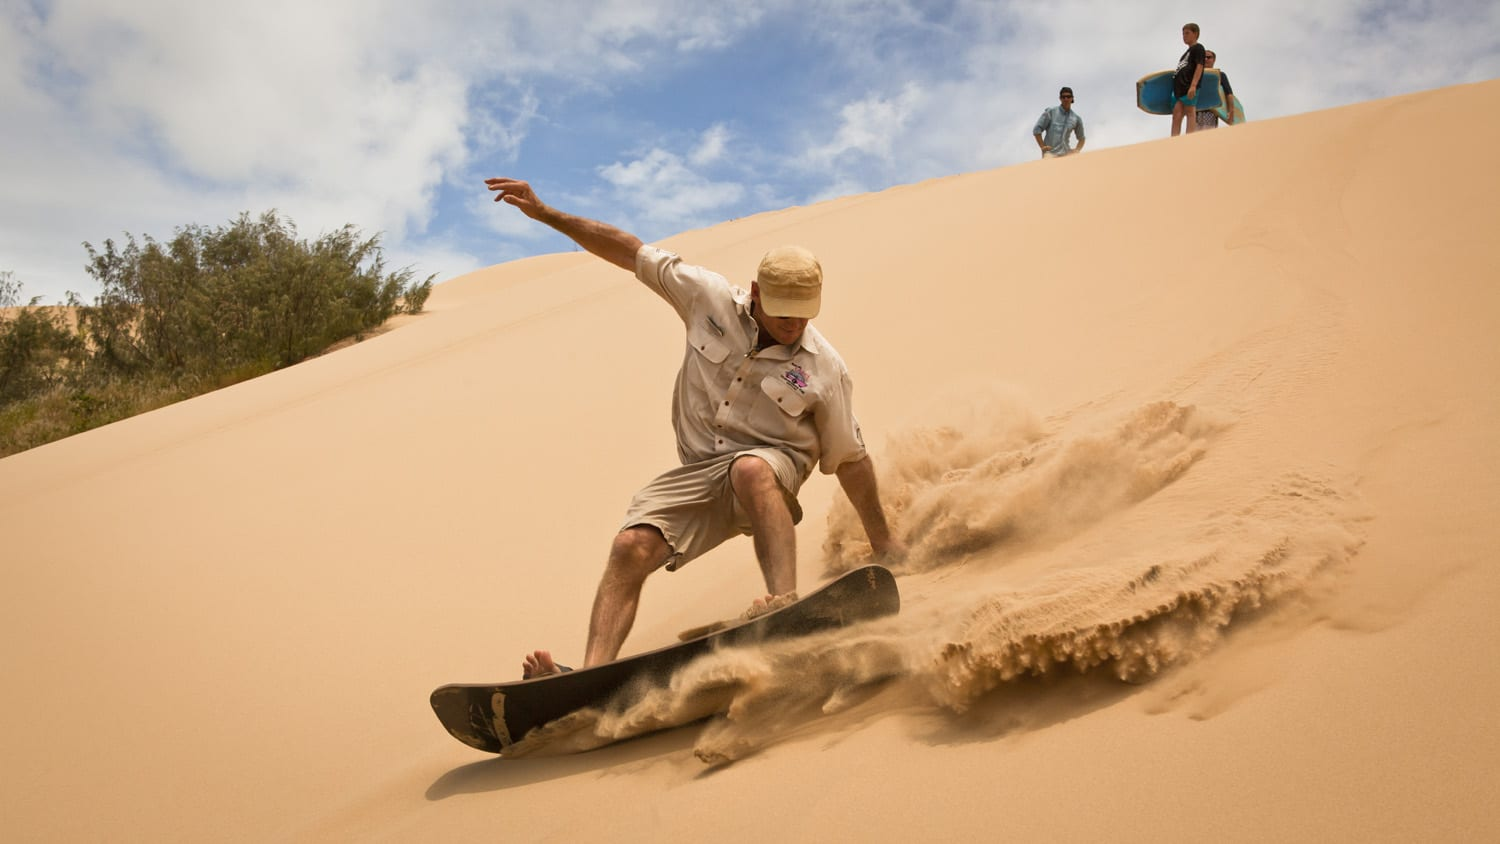 Sandboarding Agnes Water 1770 Tours Southern Great barrier Reef